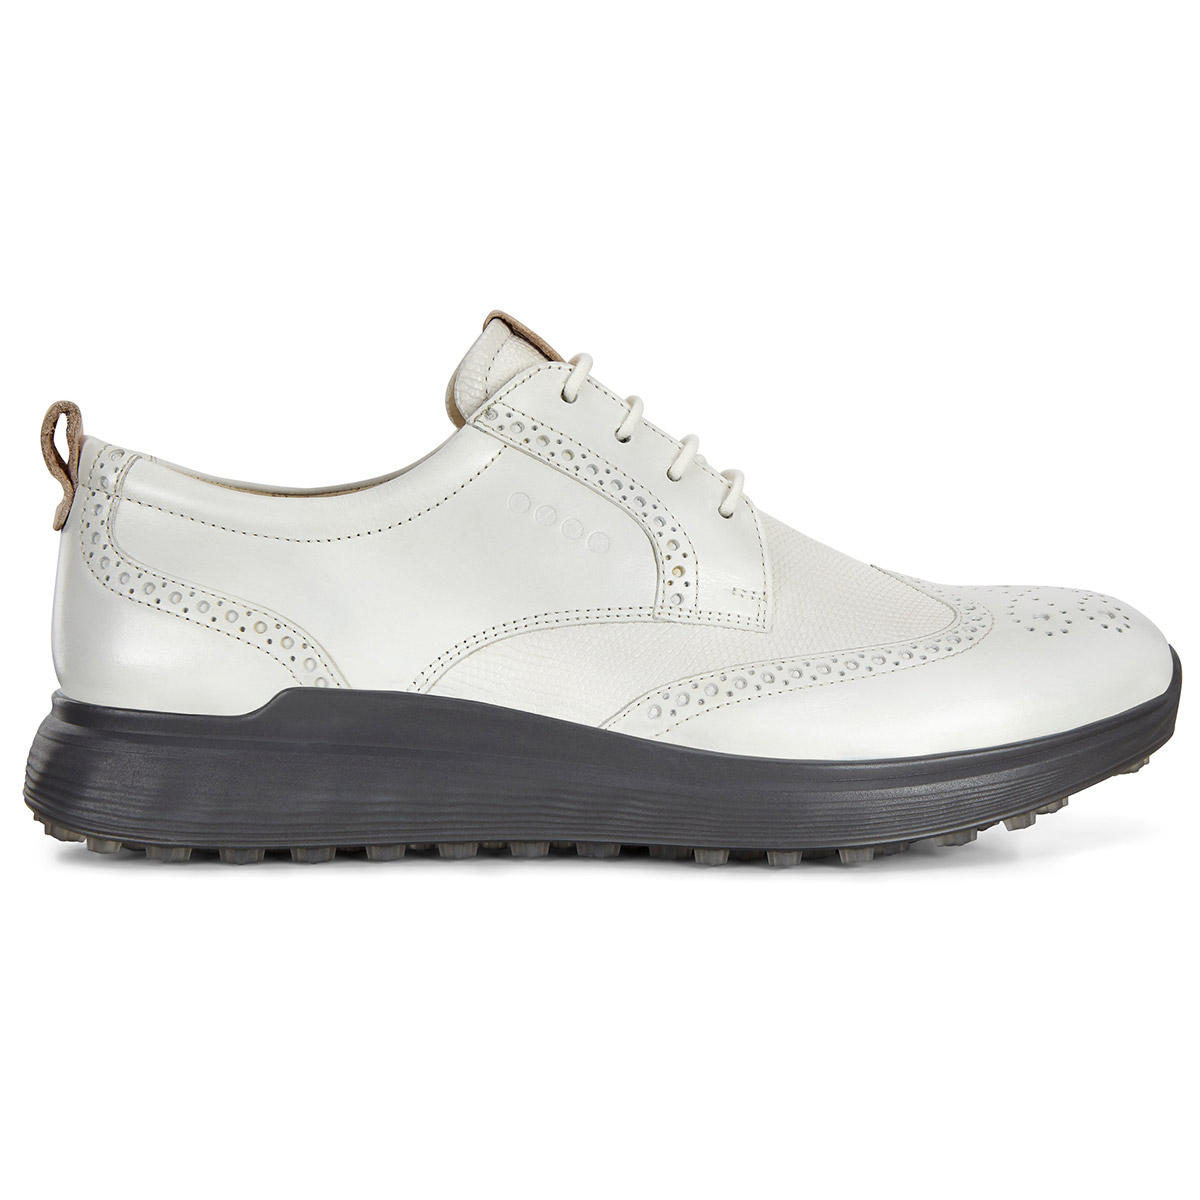 ECCO Golf S-Classic Shoes from american